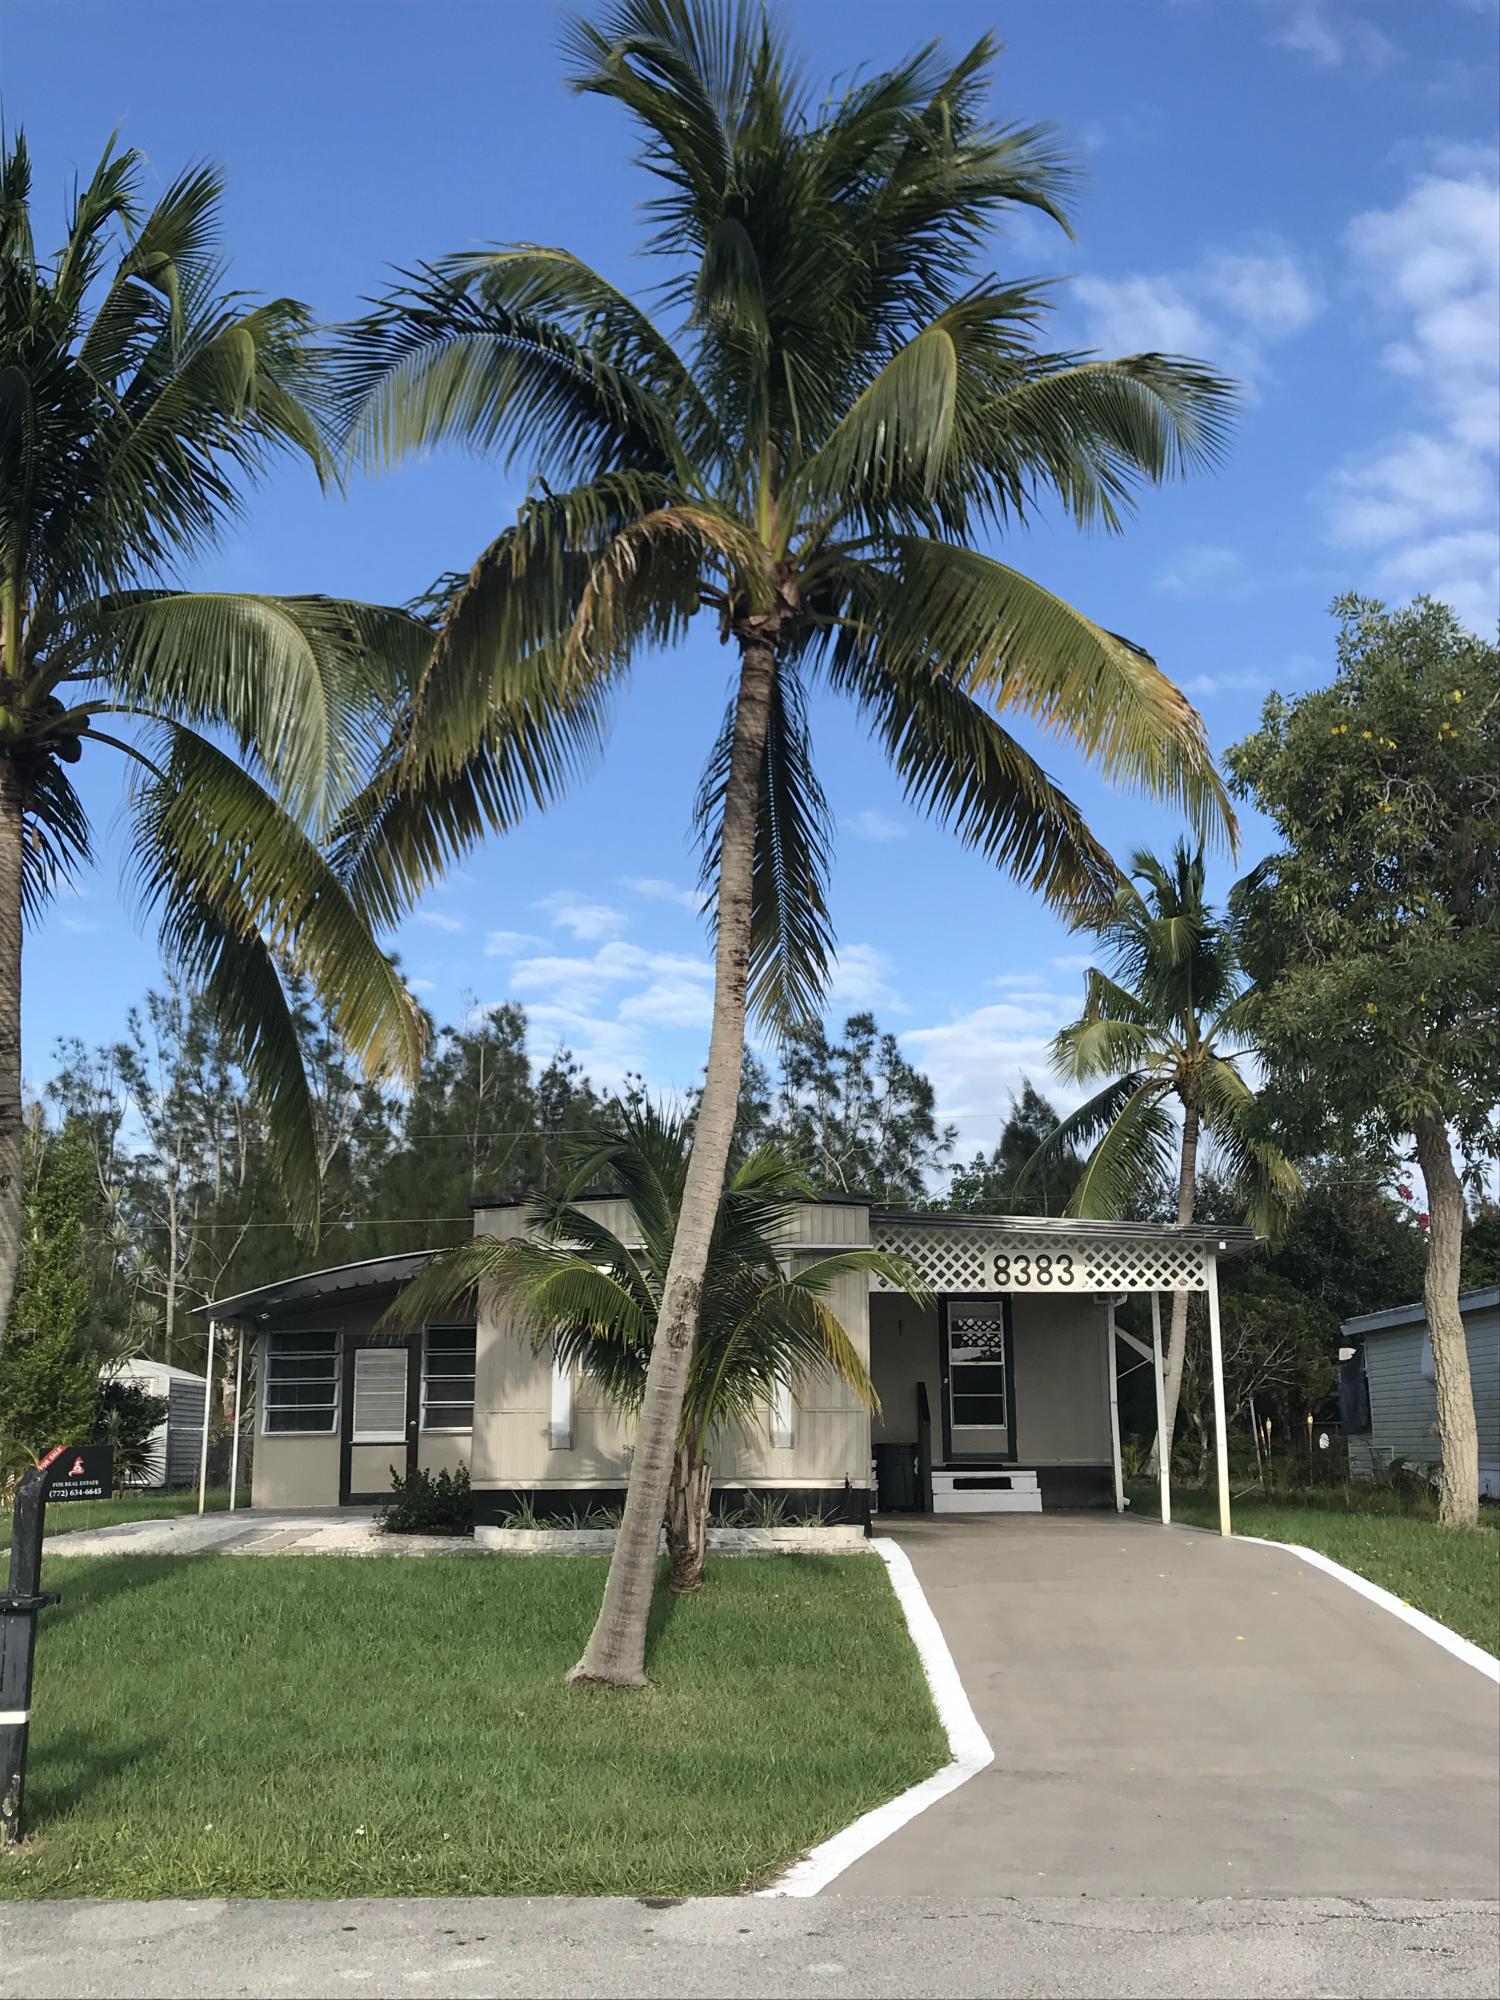 Home for sale in Ridgeway Hobe Sound Florida